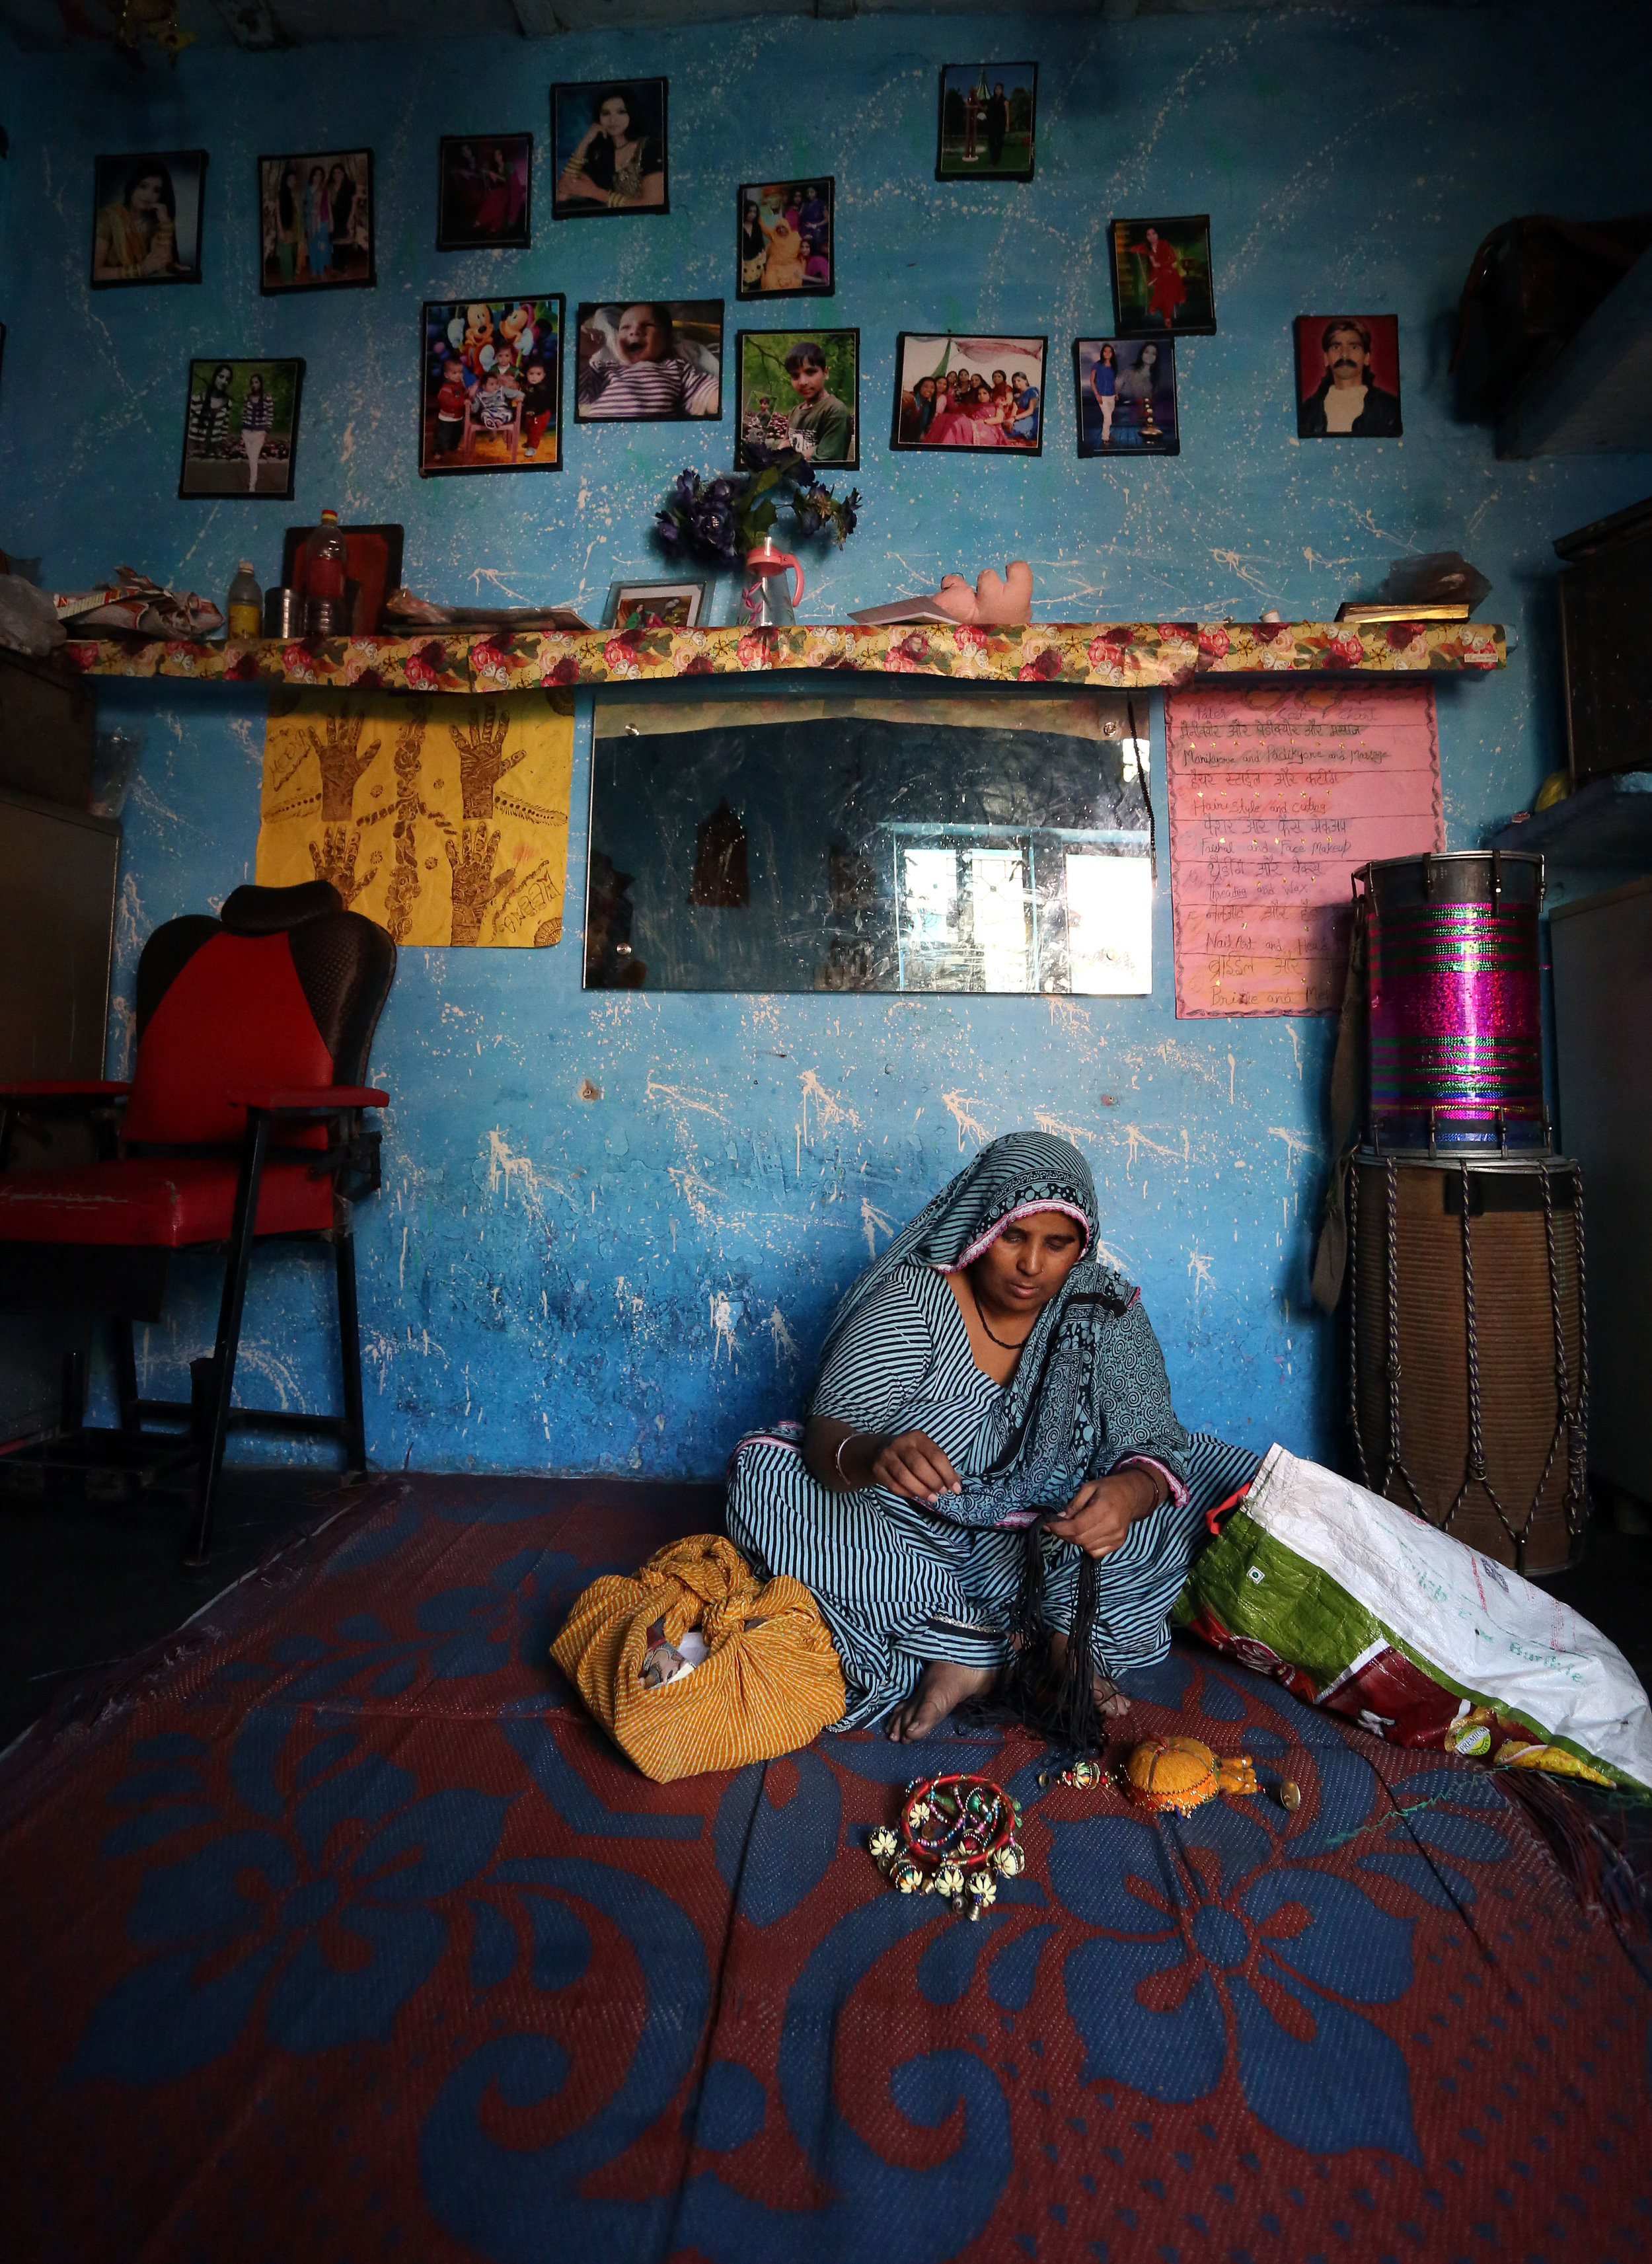 Mother-of-seven Mitoo Bhatt is pictured making traditional Rajasthani canopy hangings, used as good luck charms, at her home in the Kathputli slum colony of New Delhi, India, December 7th, 2014. She is one of 40,000 people living in the slum, which is popularly known for being the worlds largest colony of street performers, including magicians, snake charmers, acrobats, singers, dancers, actors, traditional healers and musicians and puppeteers. Their livelihood is under threat however as the Delhi government has obtained contracts to demolish the colony to make way for developers to build high-rise apartments.